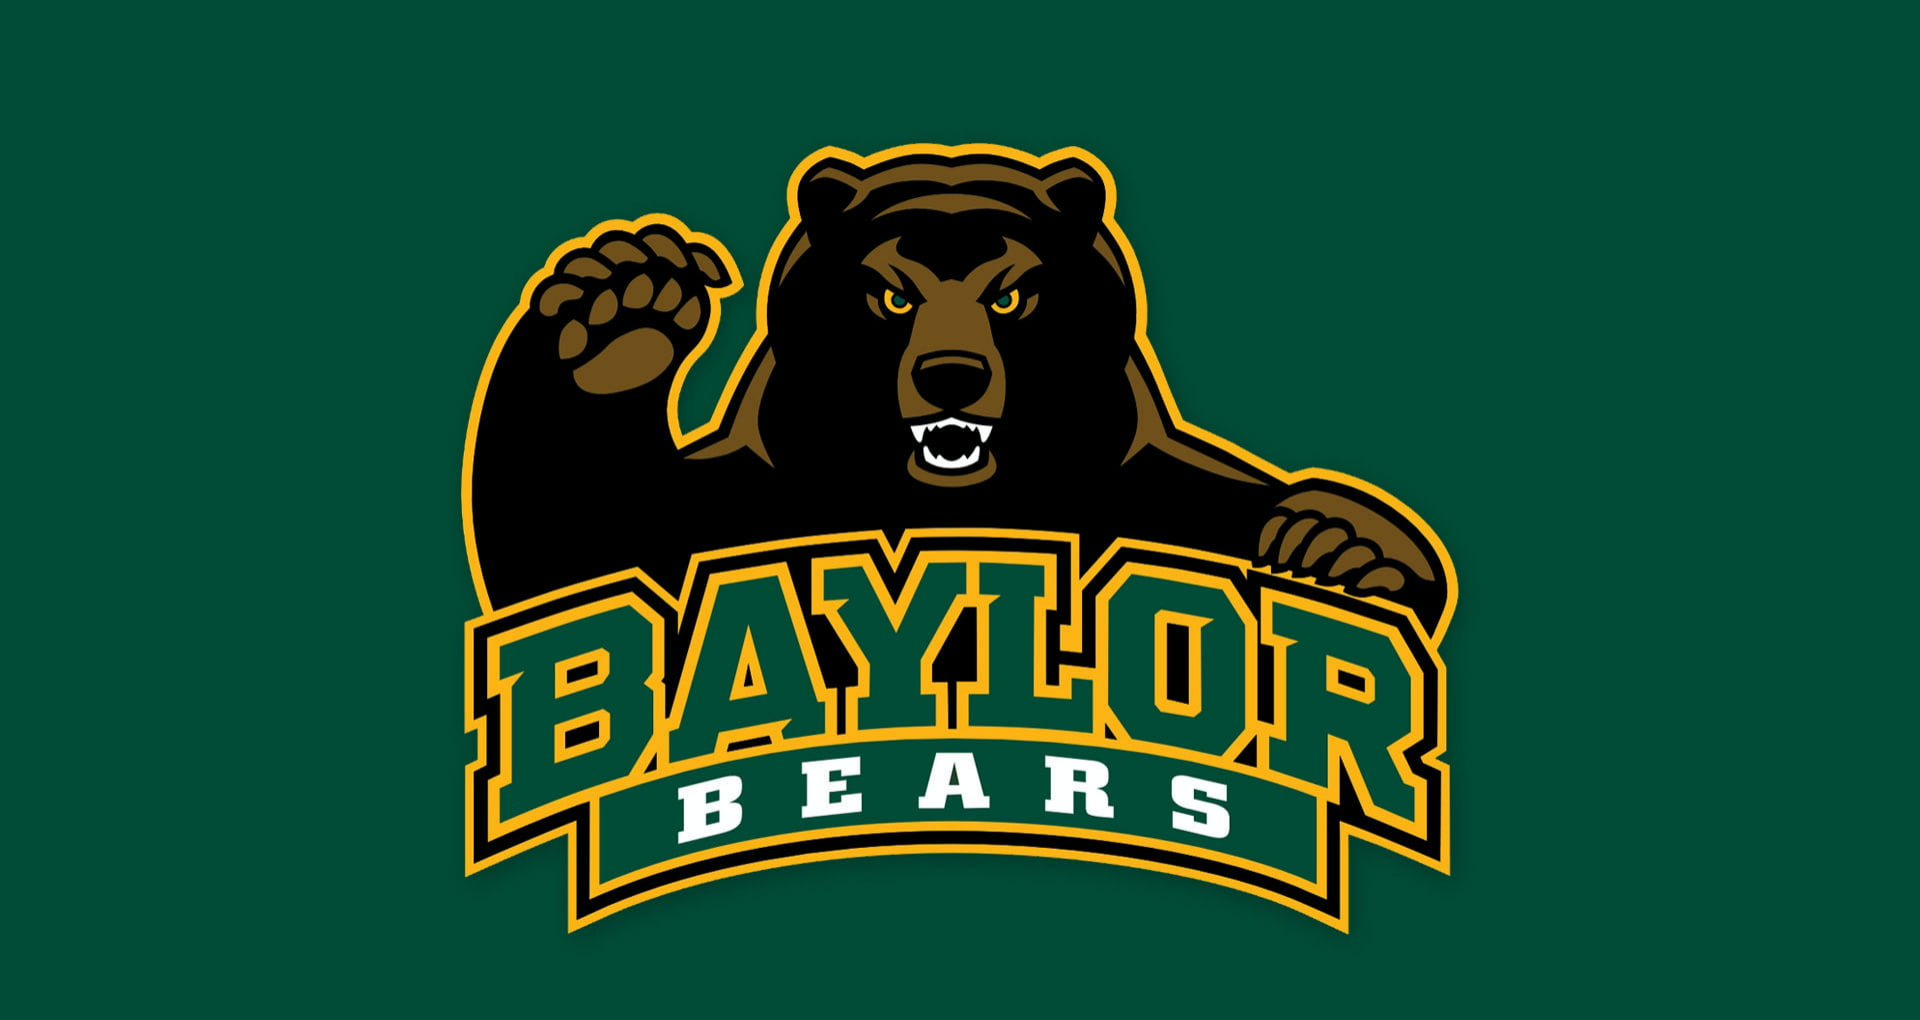 Baylor Bears logo HD wallpaper.